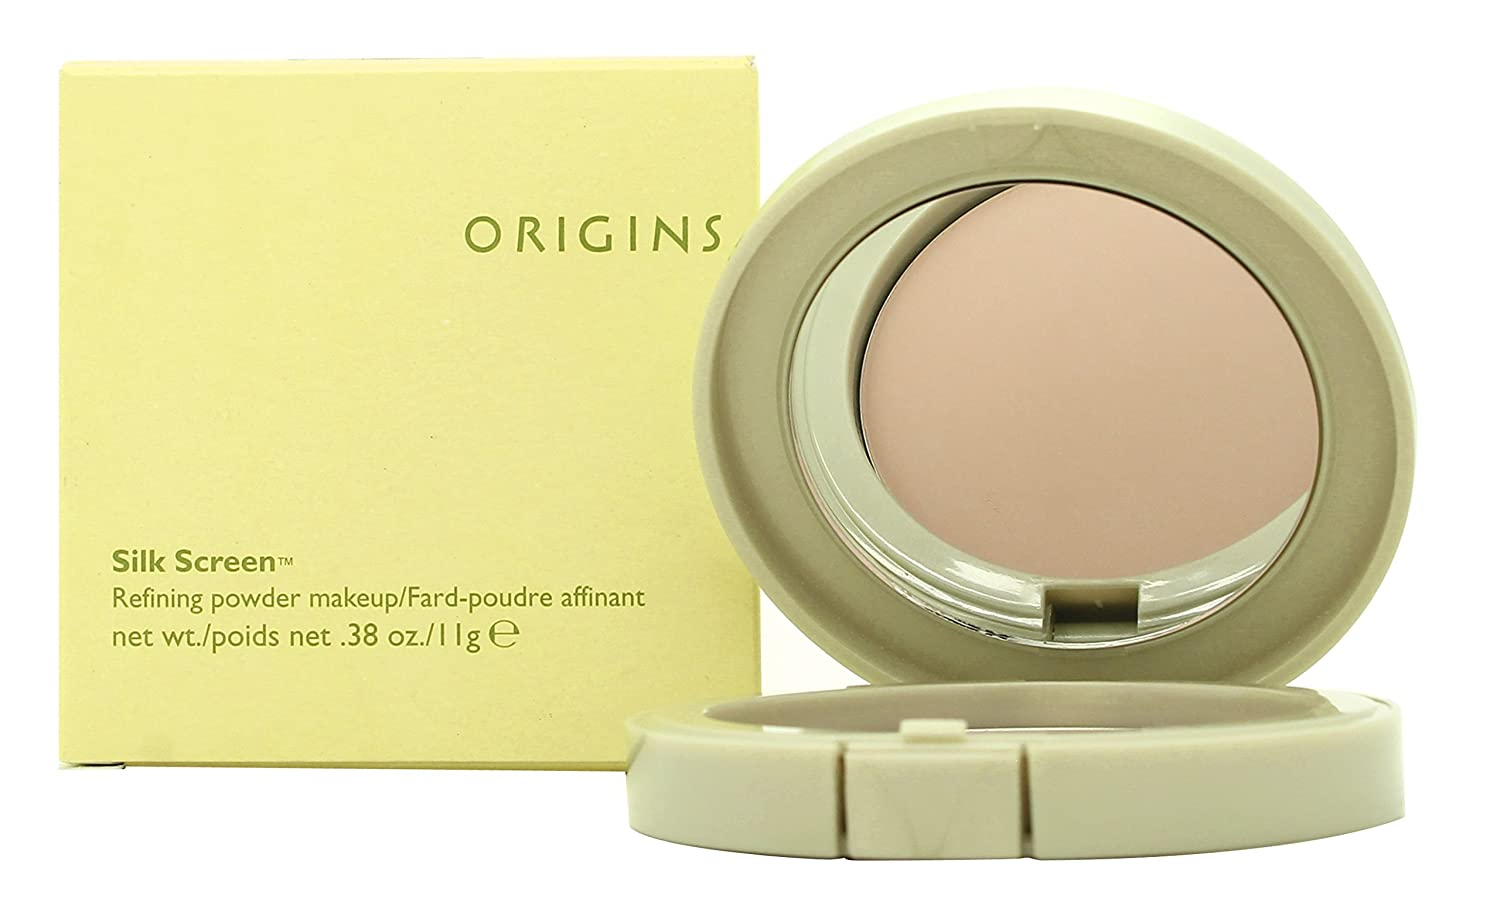 Origins Silk Screen Refining Powder Makeup, Tender, .38 oz